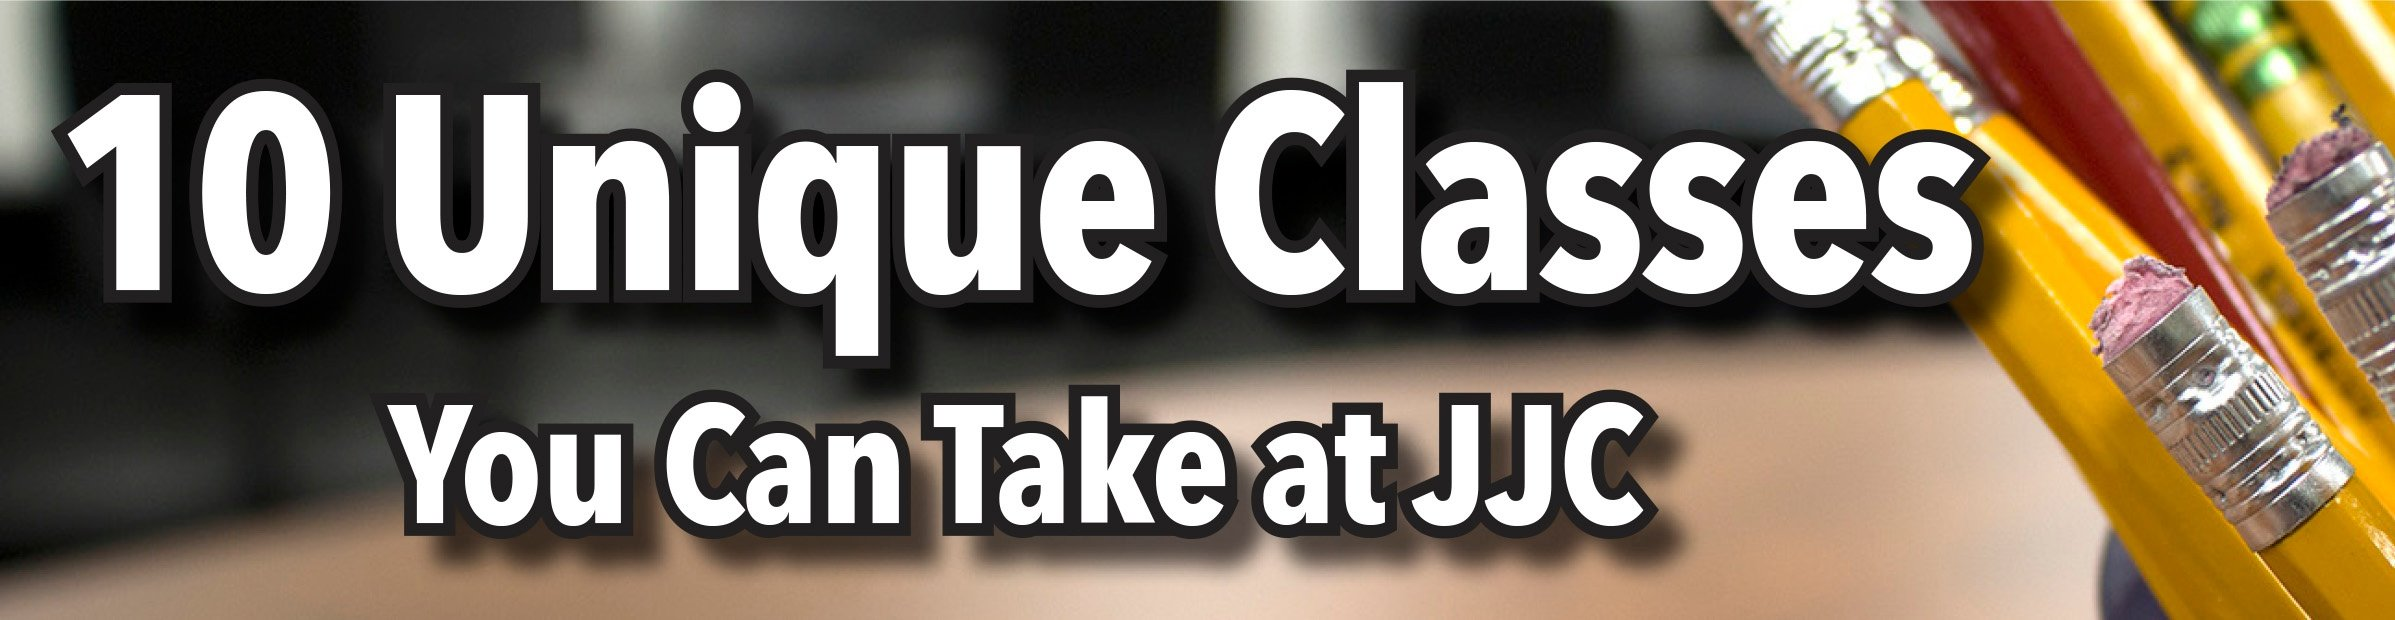 10 unique classes you can take at jjc joliet junior college